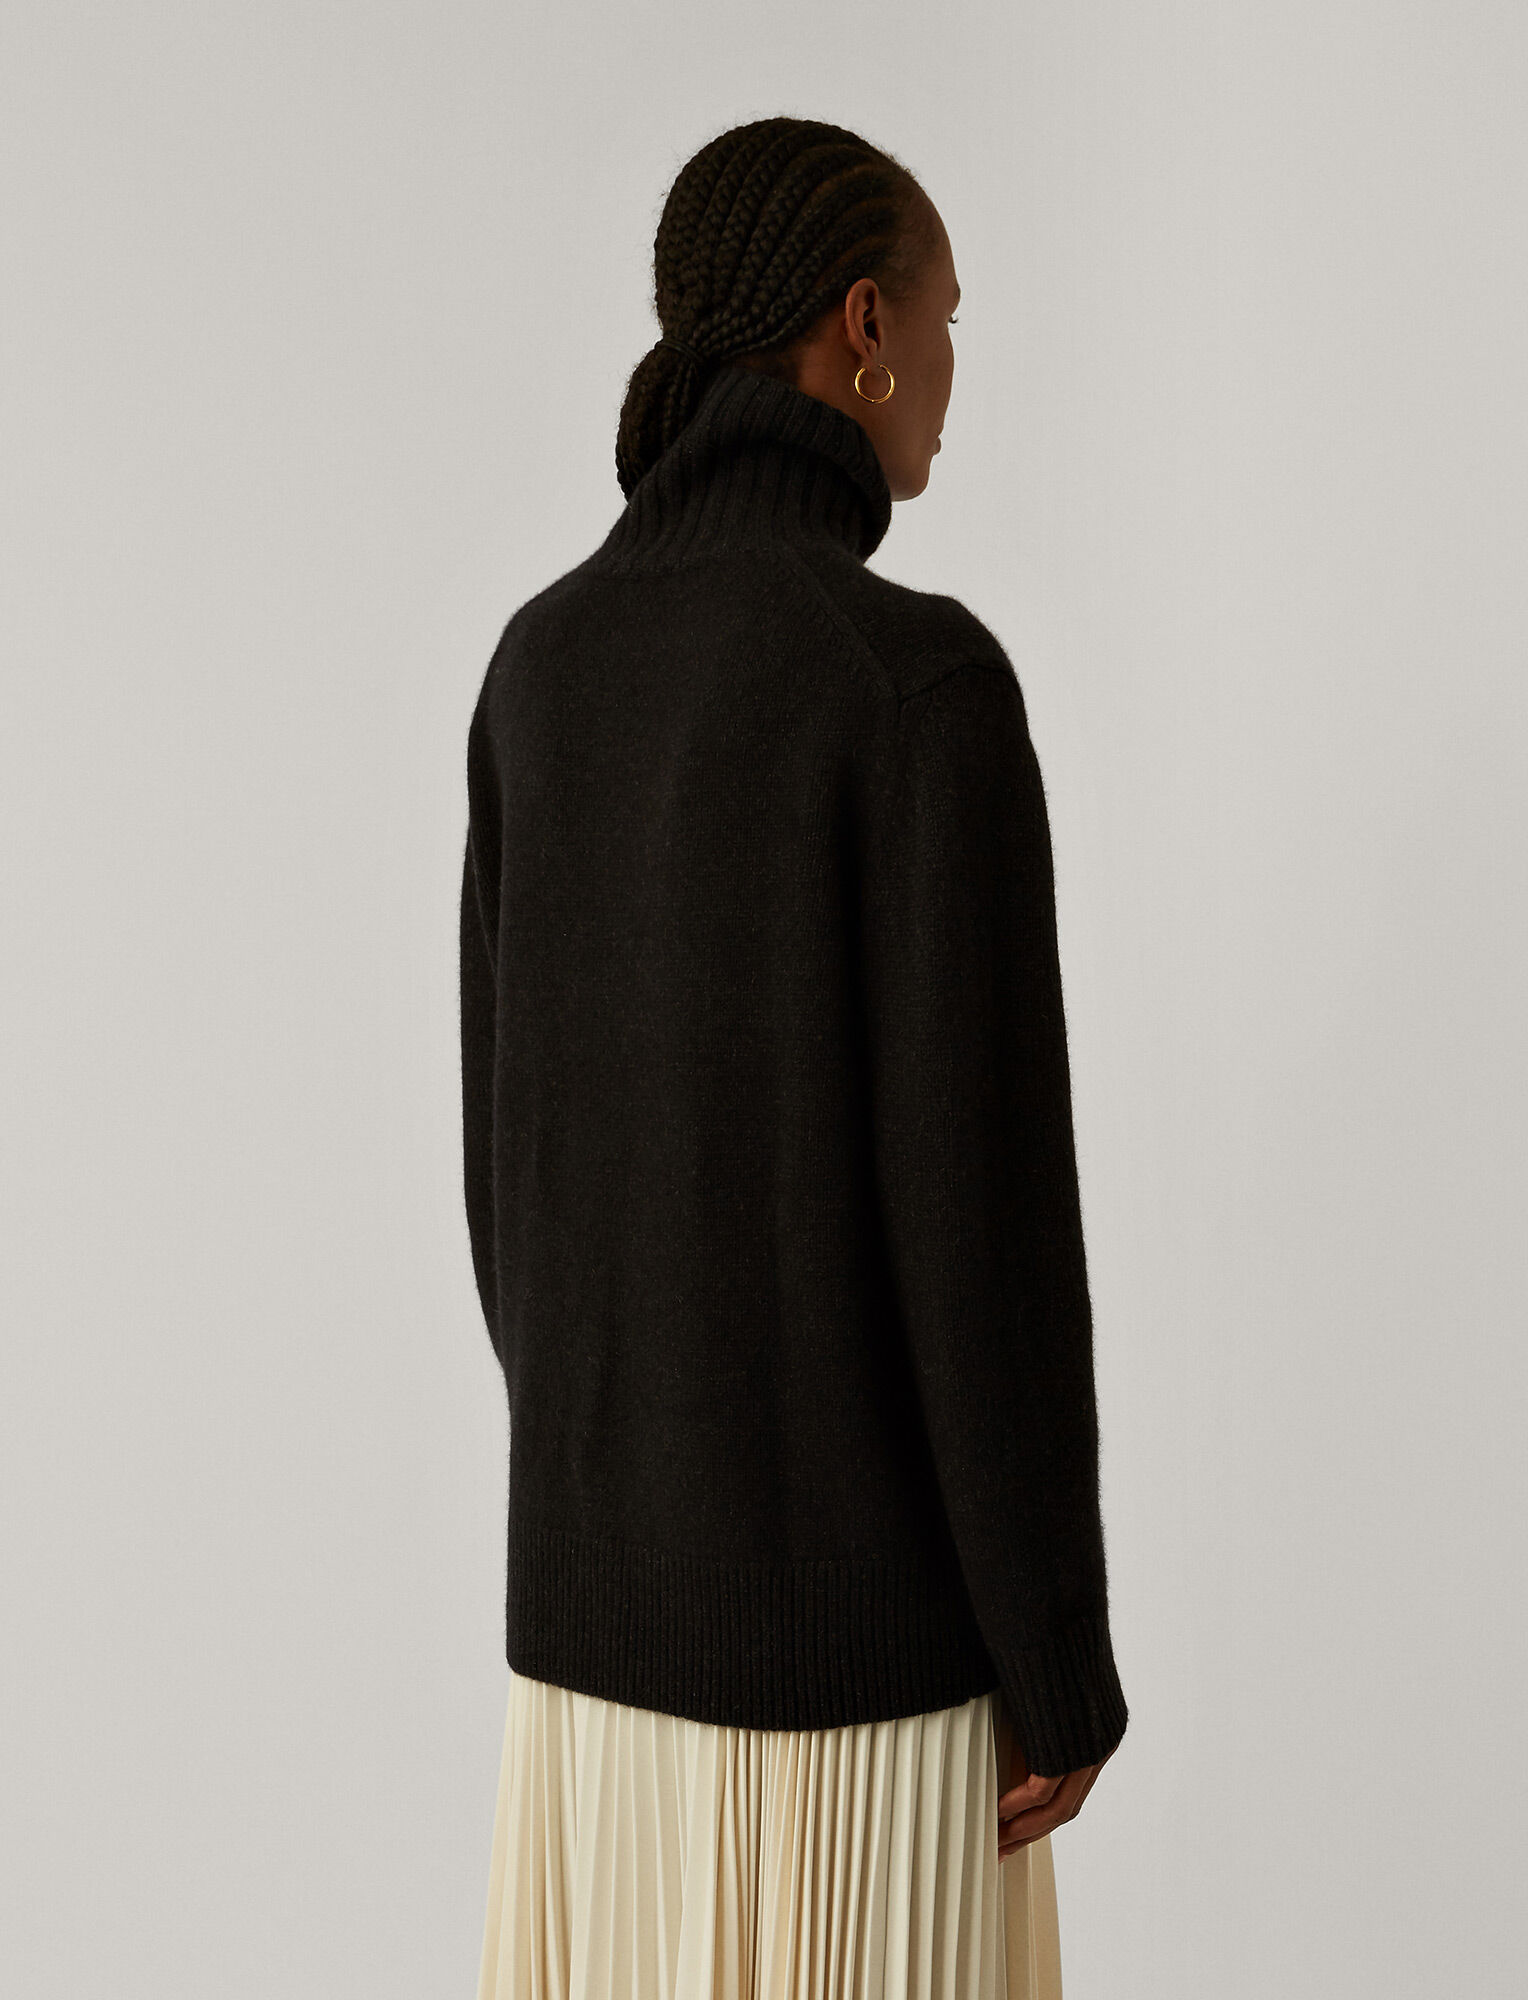 Joseph, Cashmere Luxe High Neck Jumper, in ANTHRACITE